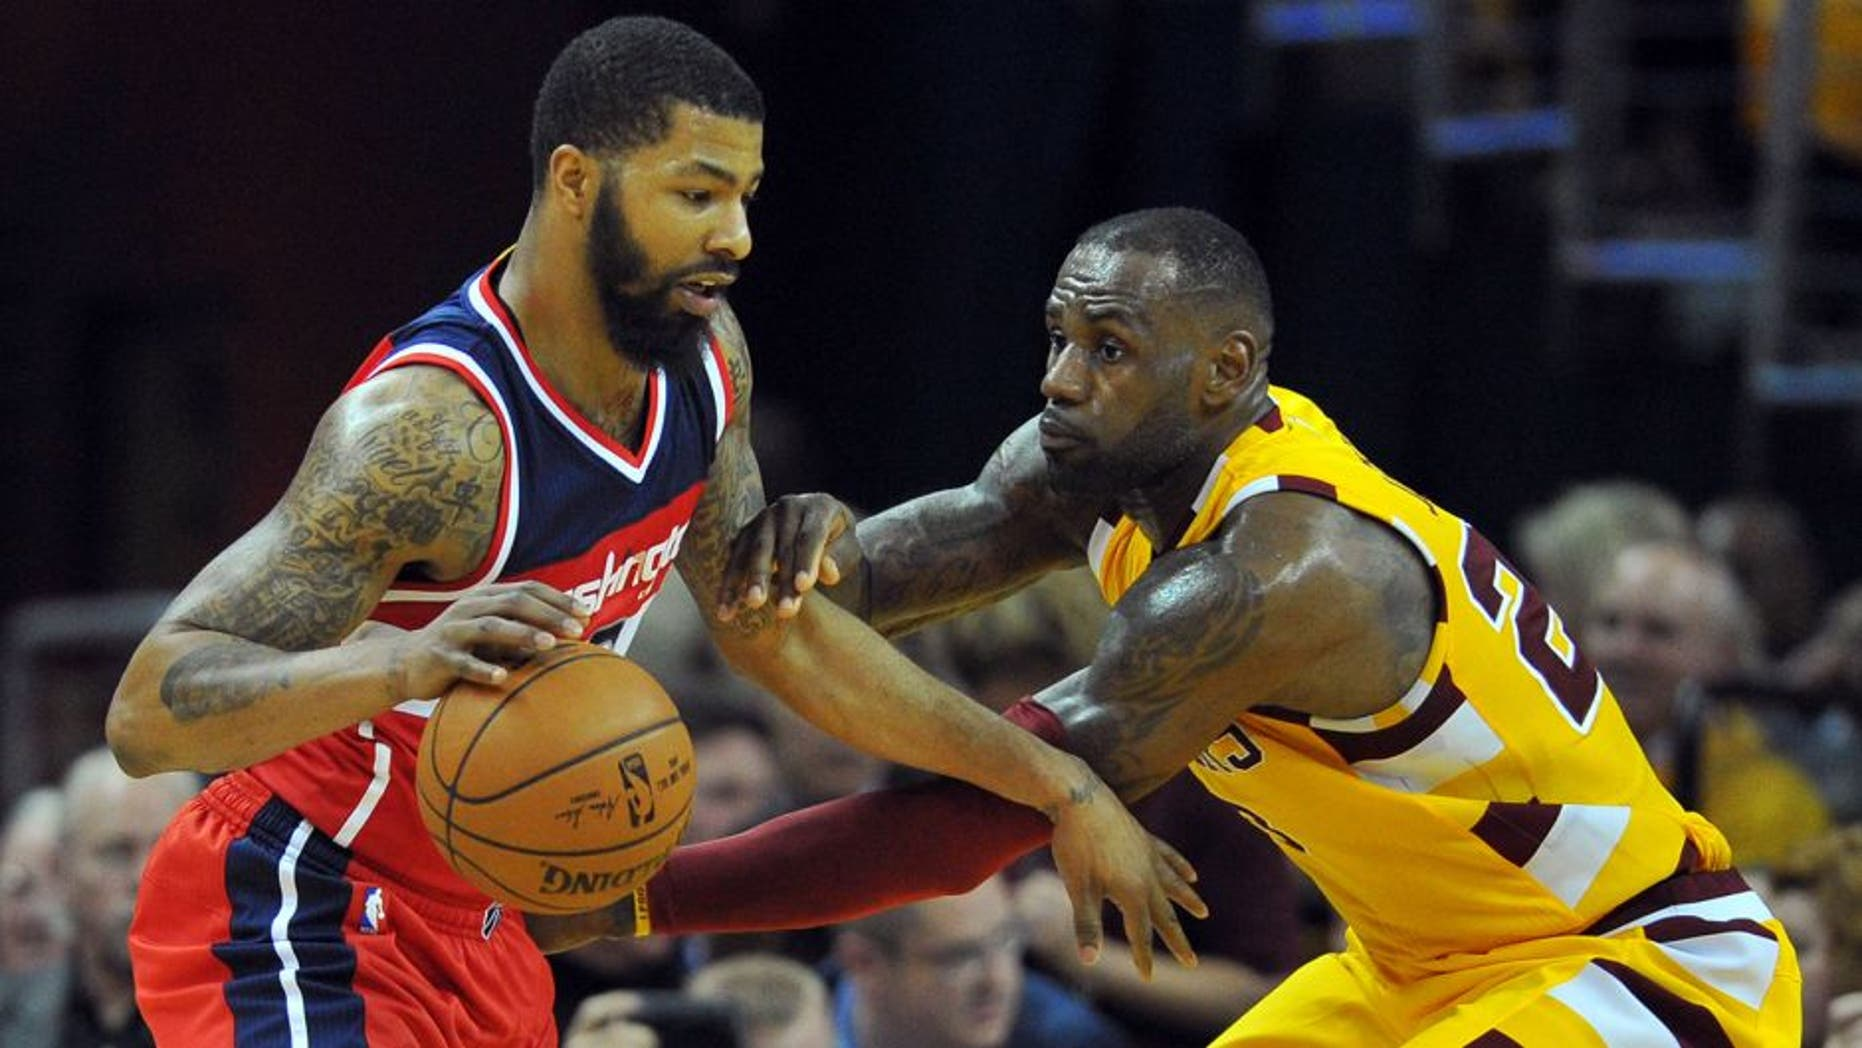 Mar 4, 2016; Cleveland, OH, USA; Cleveland Cavaliers forward LeBron James (23) defends Washington Wizards forward Markieff Morris (5) during the third quarter at Quicken Loans Arena. The Cavs won 108-83. Mandatory Credit: Ken Blaze-USA TODAY Sports